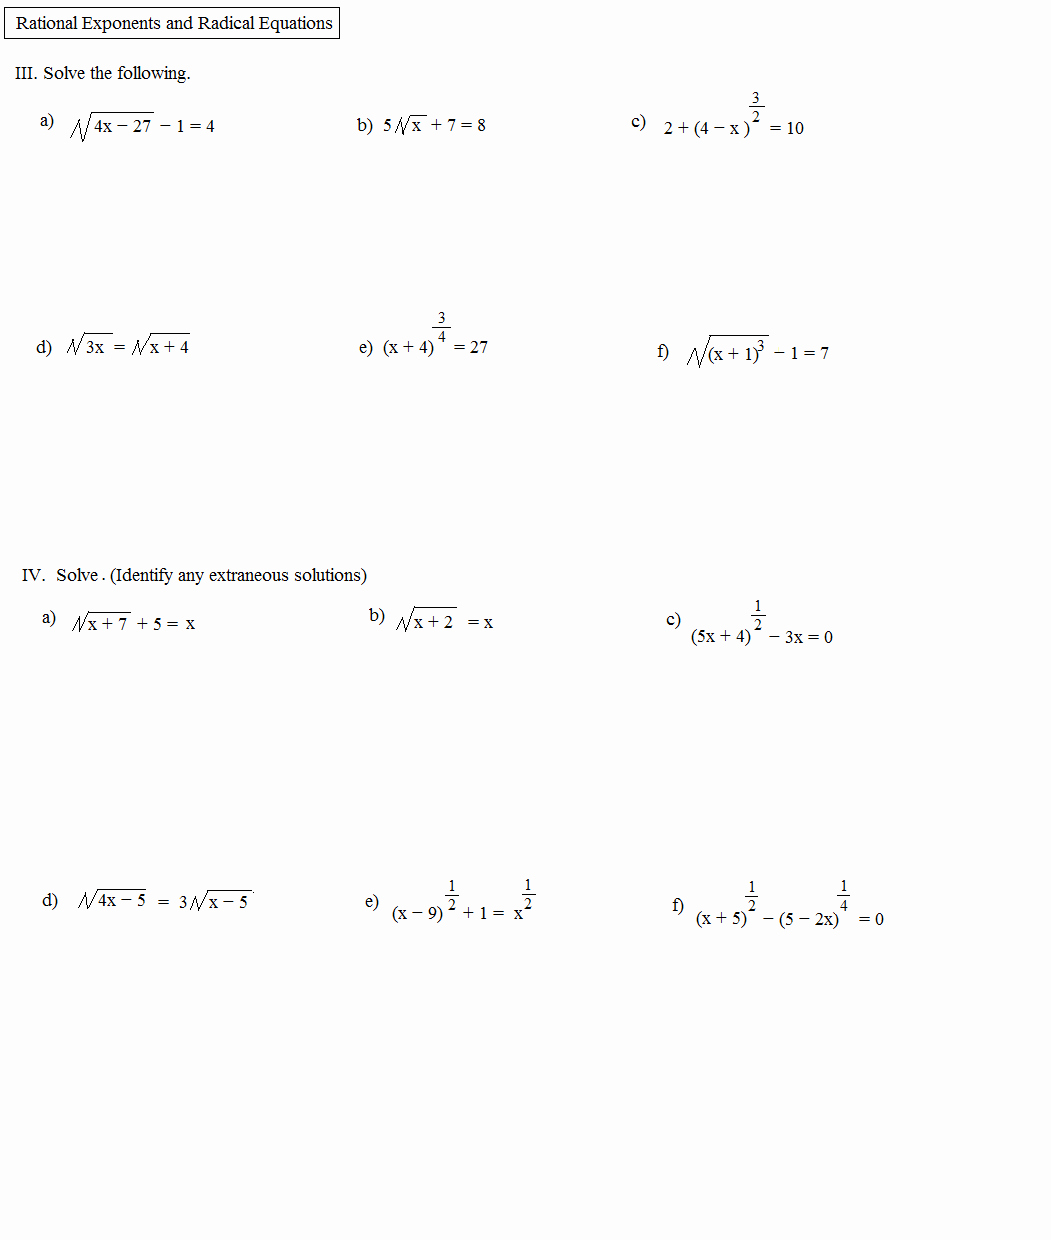 Solve Radical Equations Worksheet New Math Plane Rational Exponents and Radical Equations